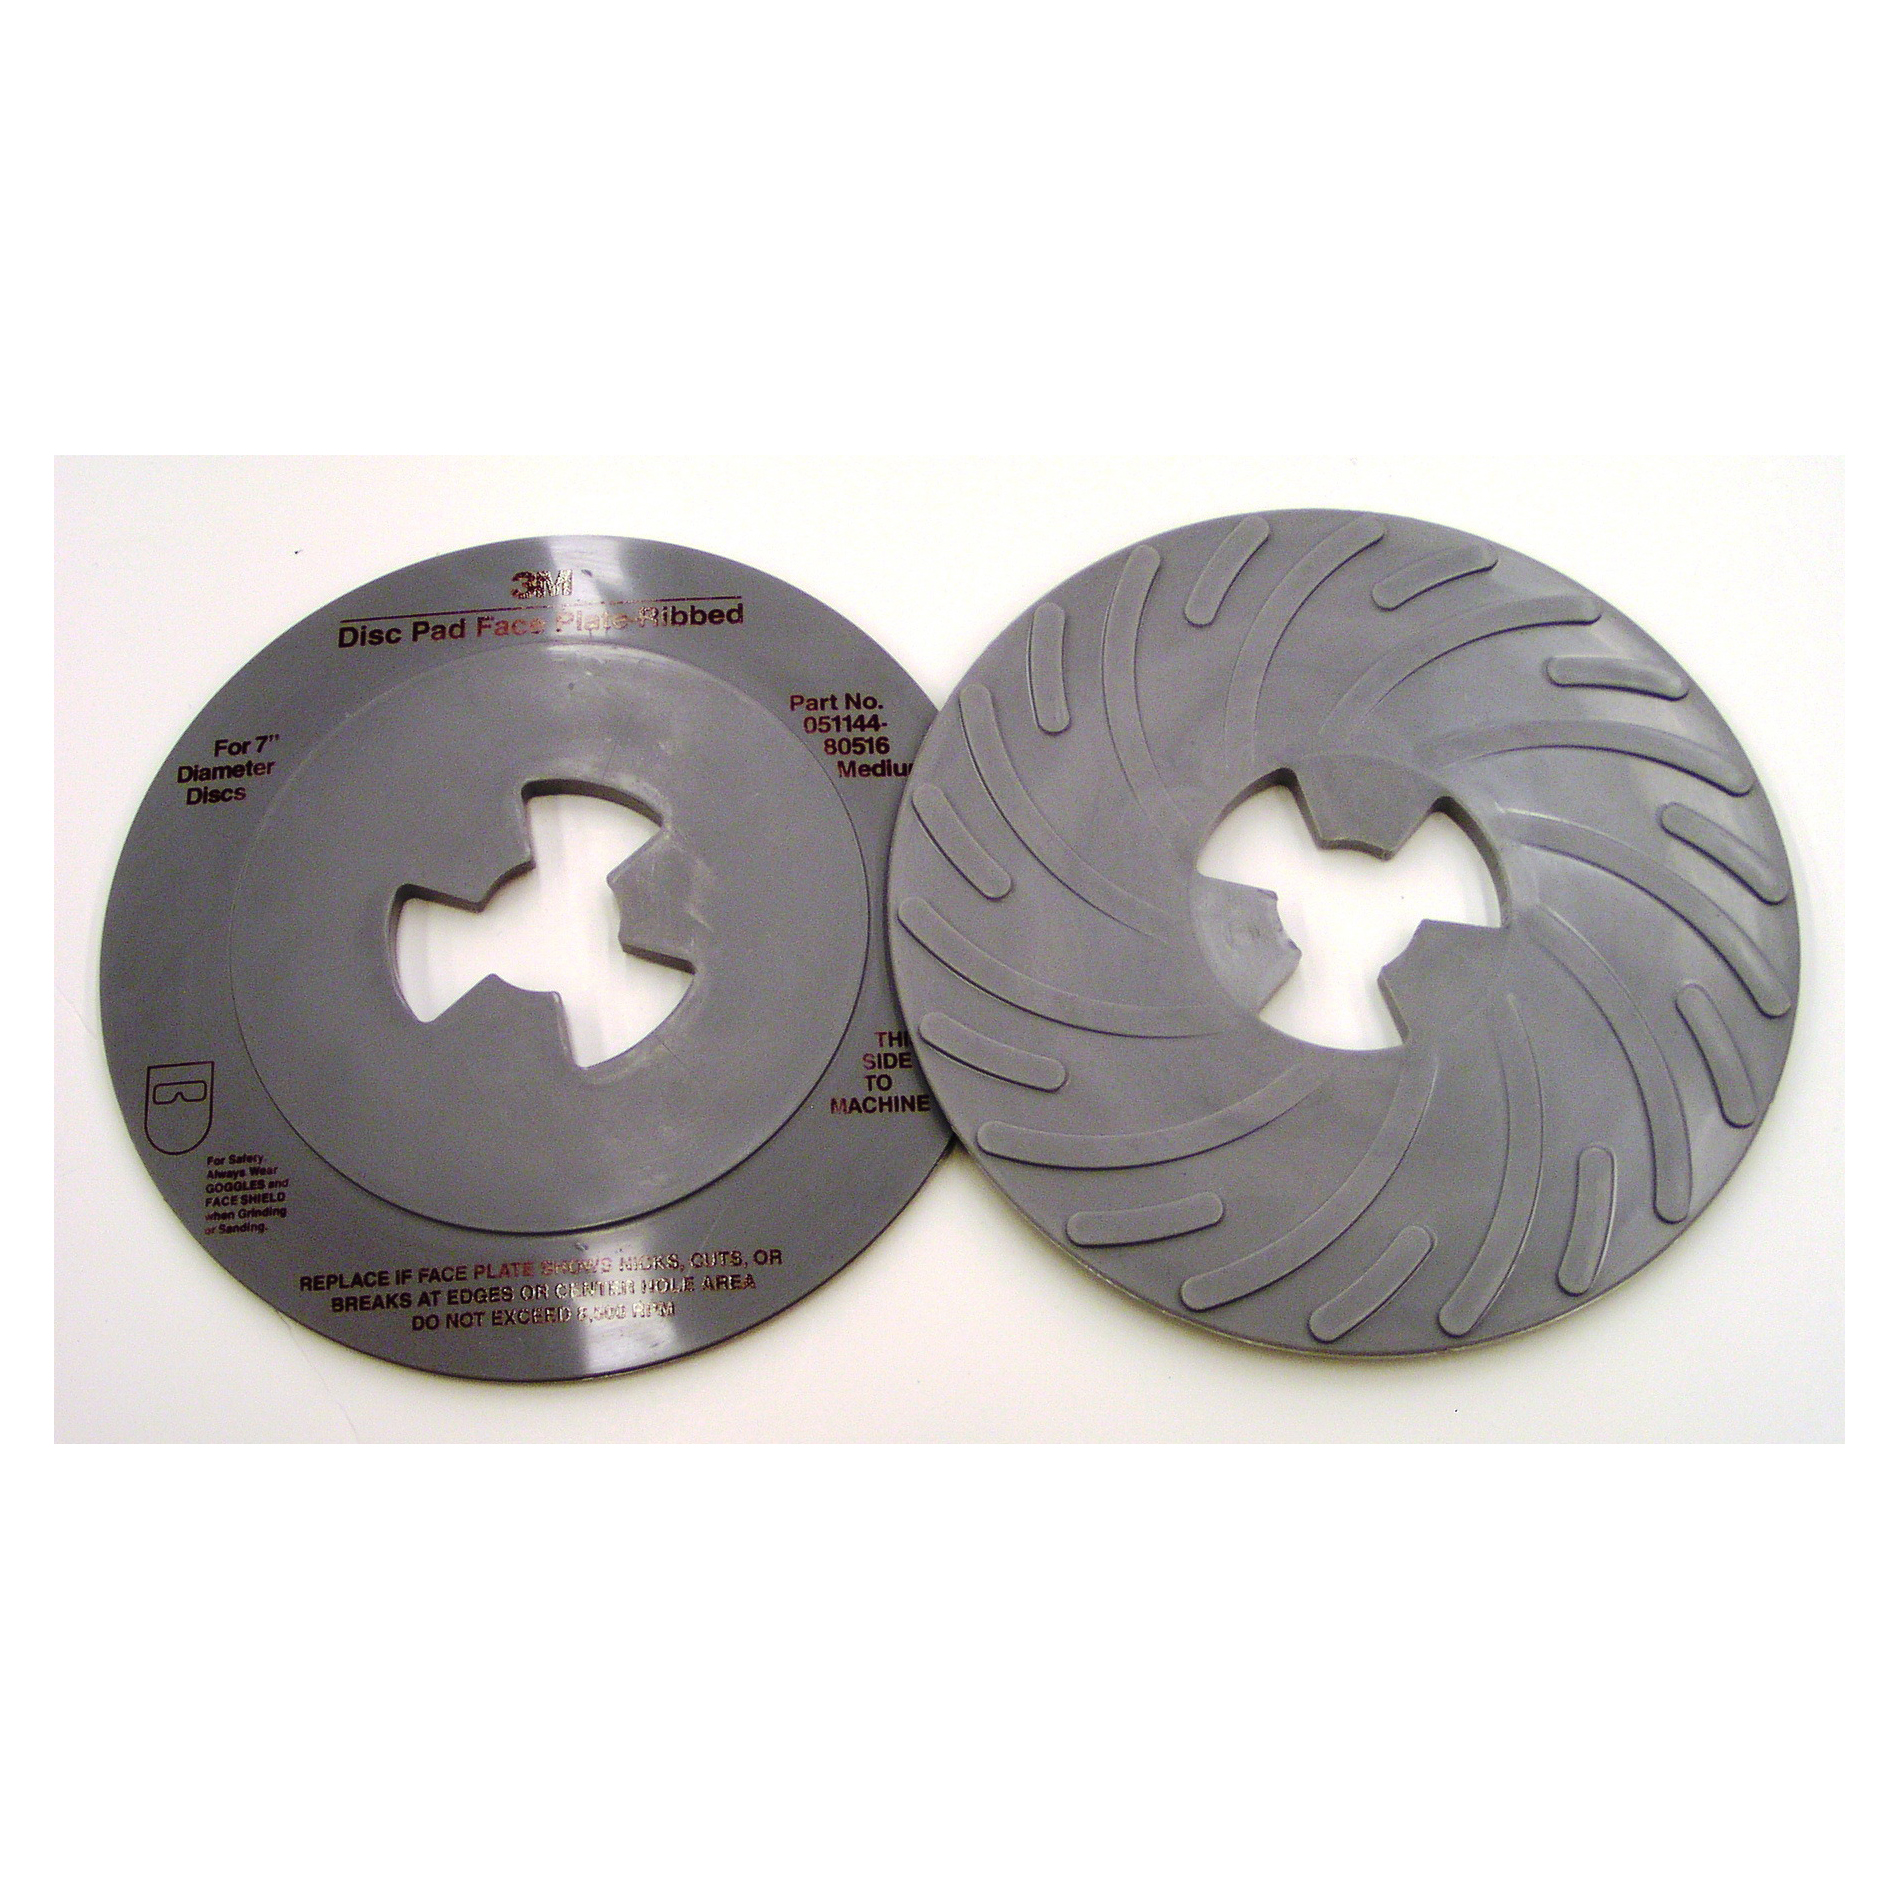 3M™ 051144-80516 Medium Density Ribbed Disc Pad Face Plate, 7 in, For Use With 3M™ Disc Pad Hub, Right Angle Grinder and Rotary Sander